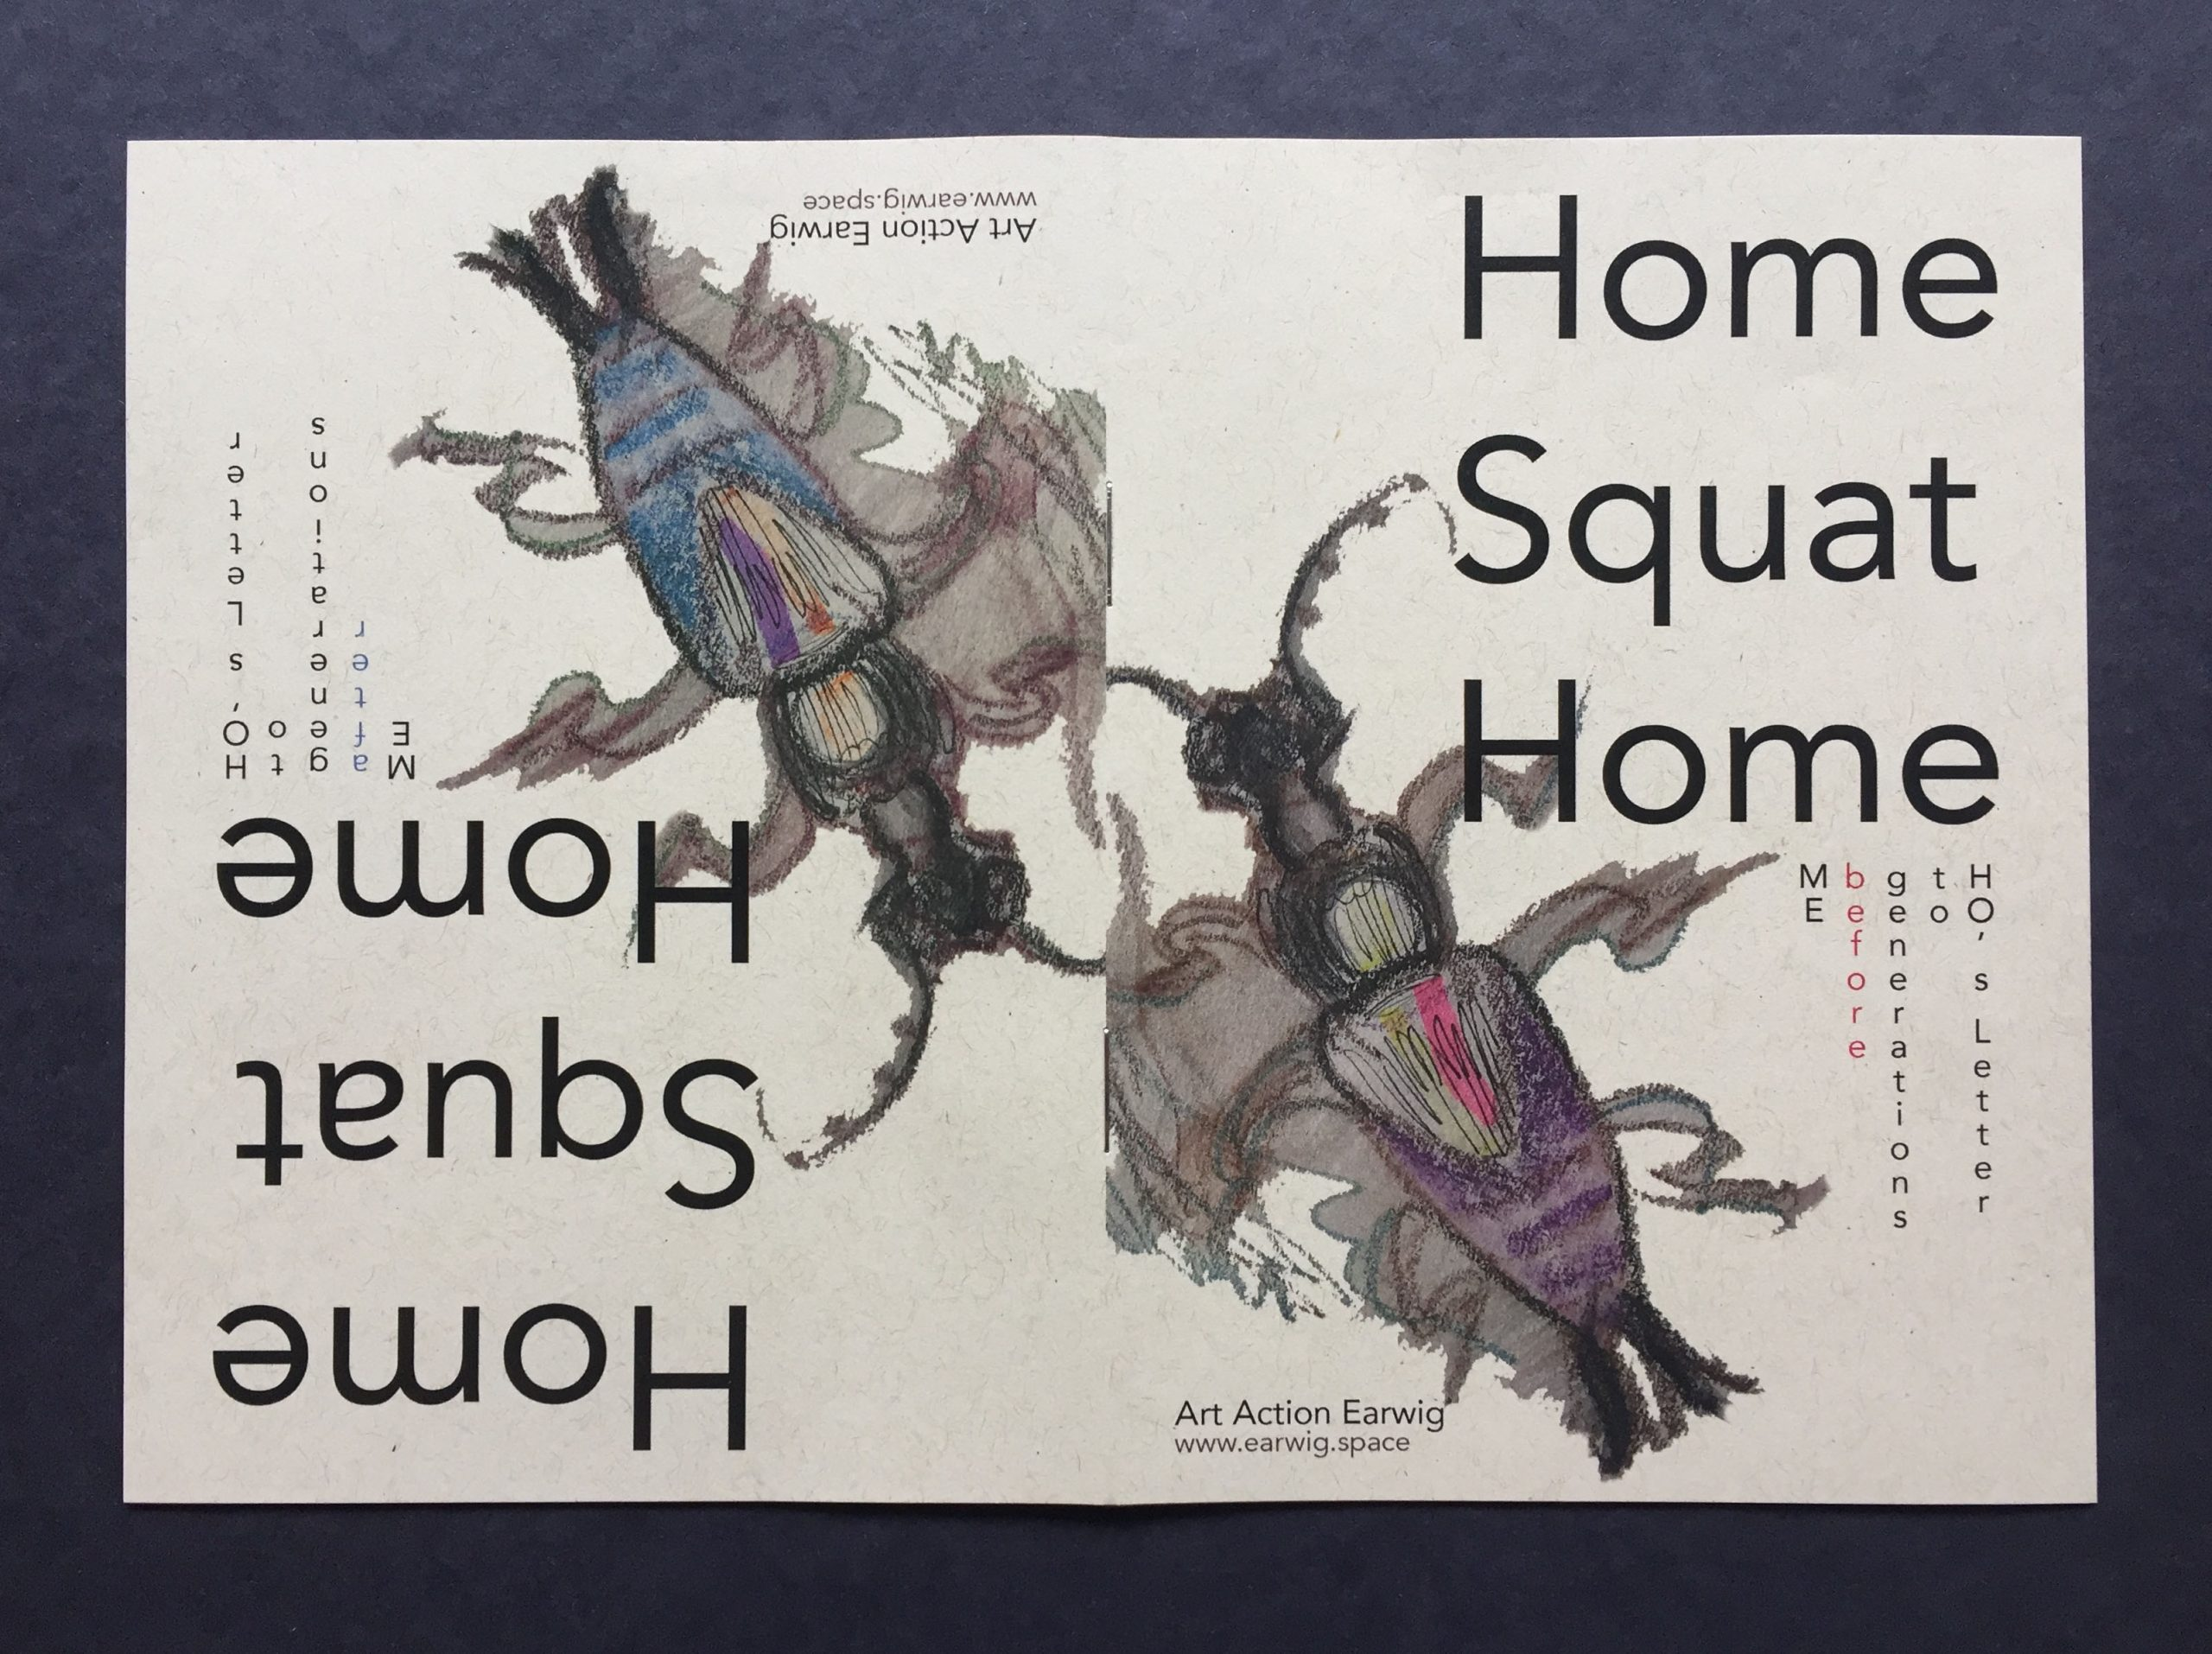 Art Action Earwig's Home Squat Home zine cover